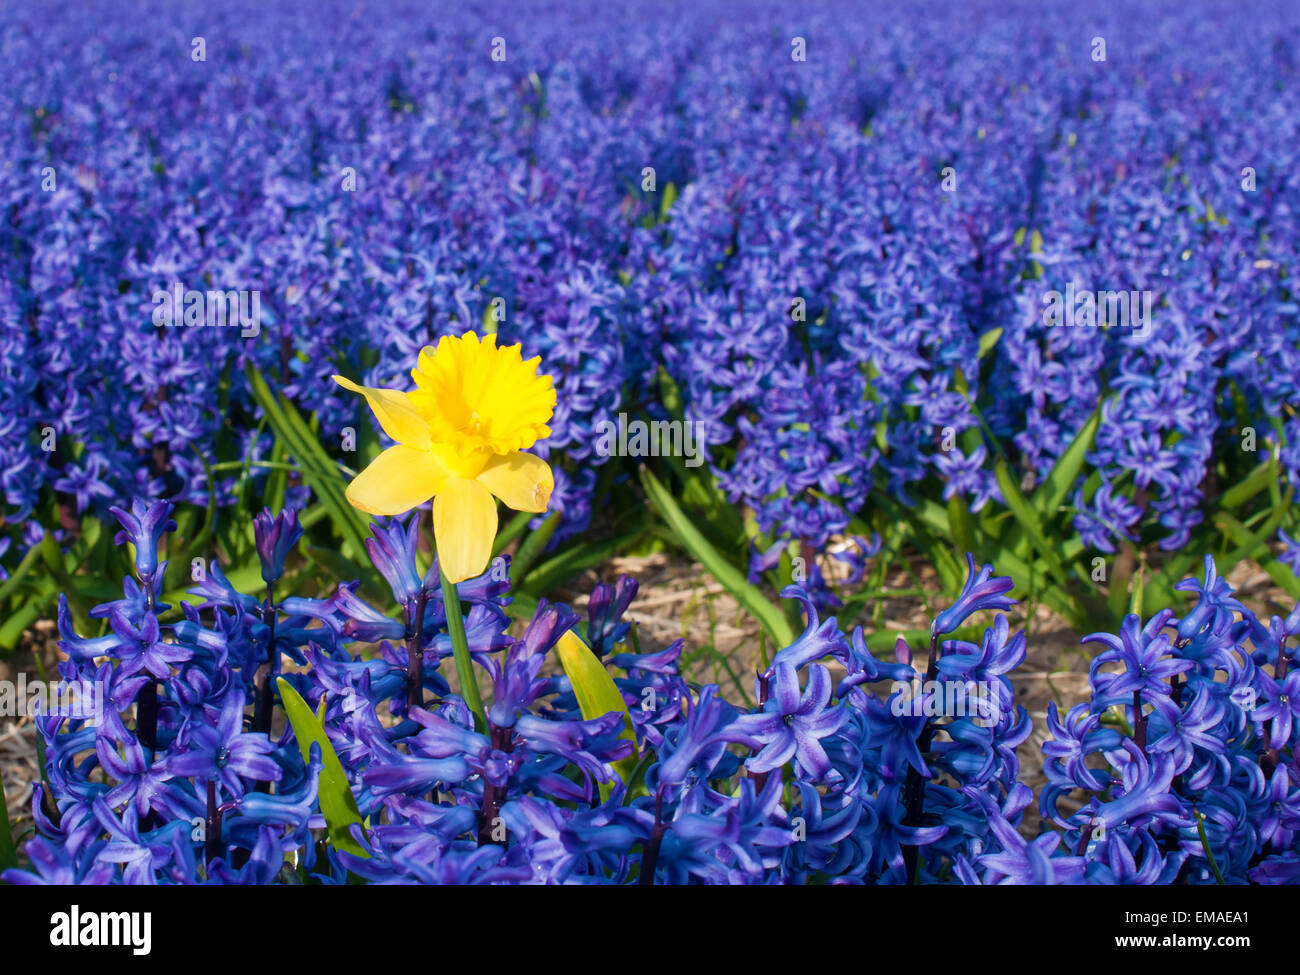 a lone daffodil stands out in a field of blue flowers in leiden